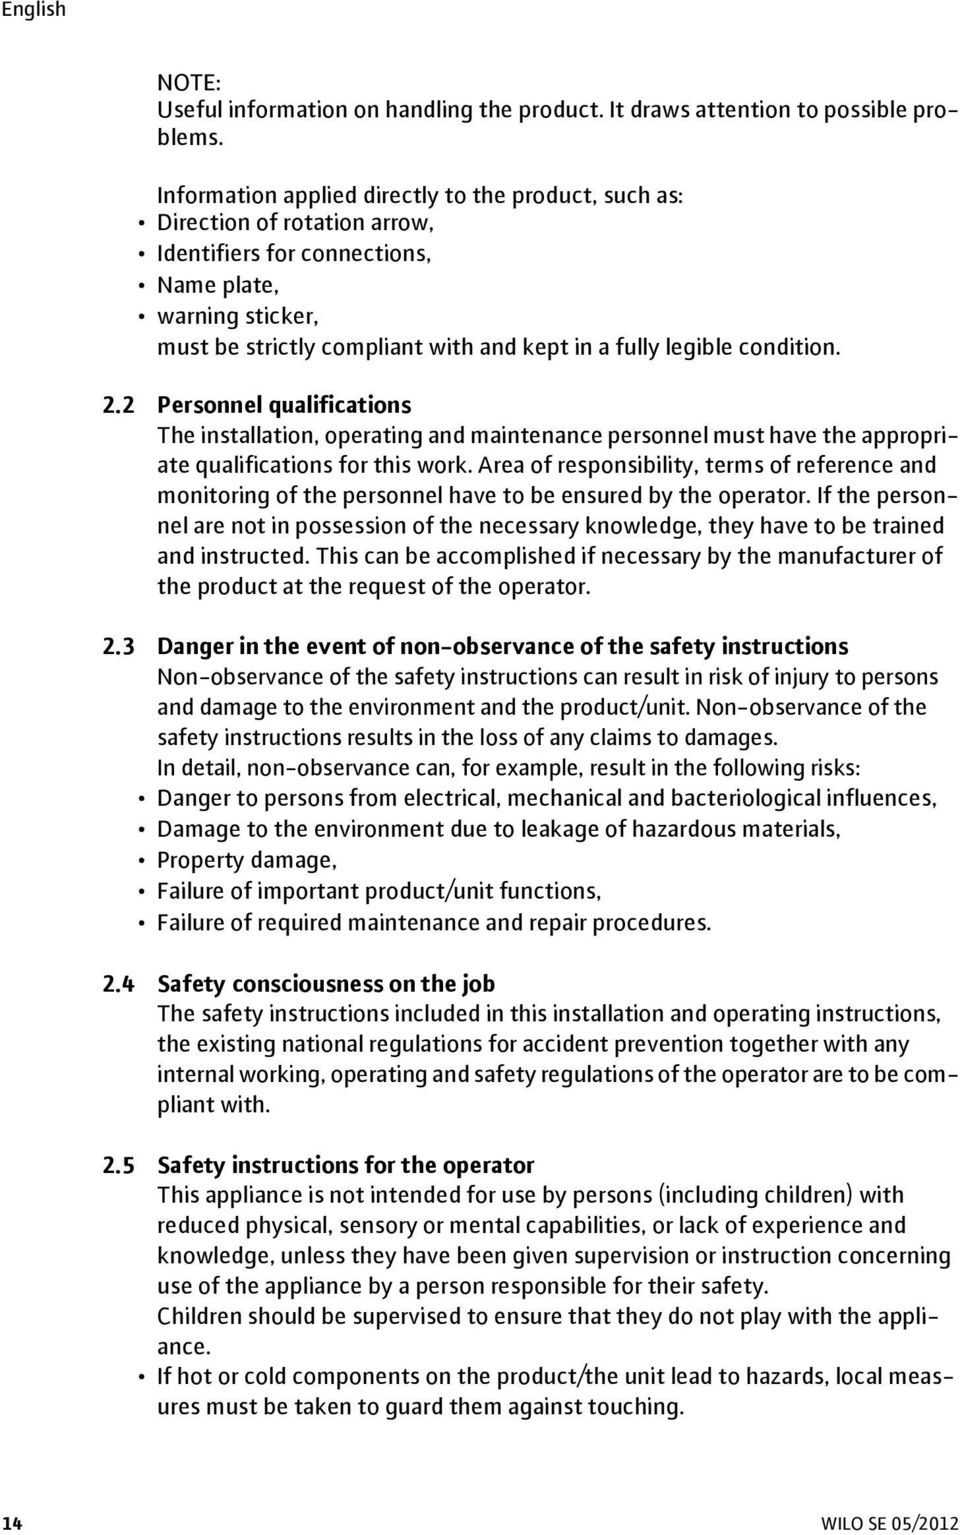 legible condition. 2.2 Personnel qualifications The installation, operating and maintenance personnel must have the appropriate qualifications for this work.